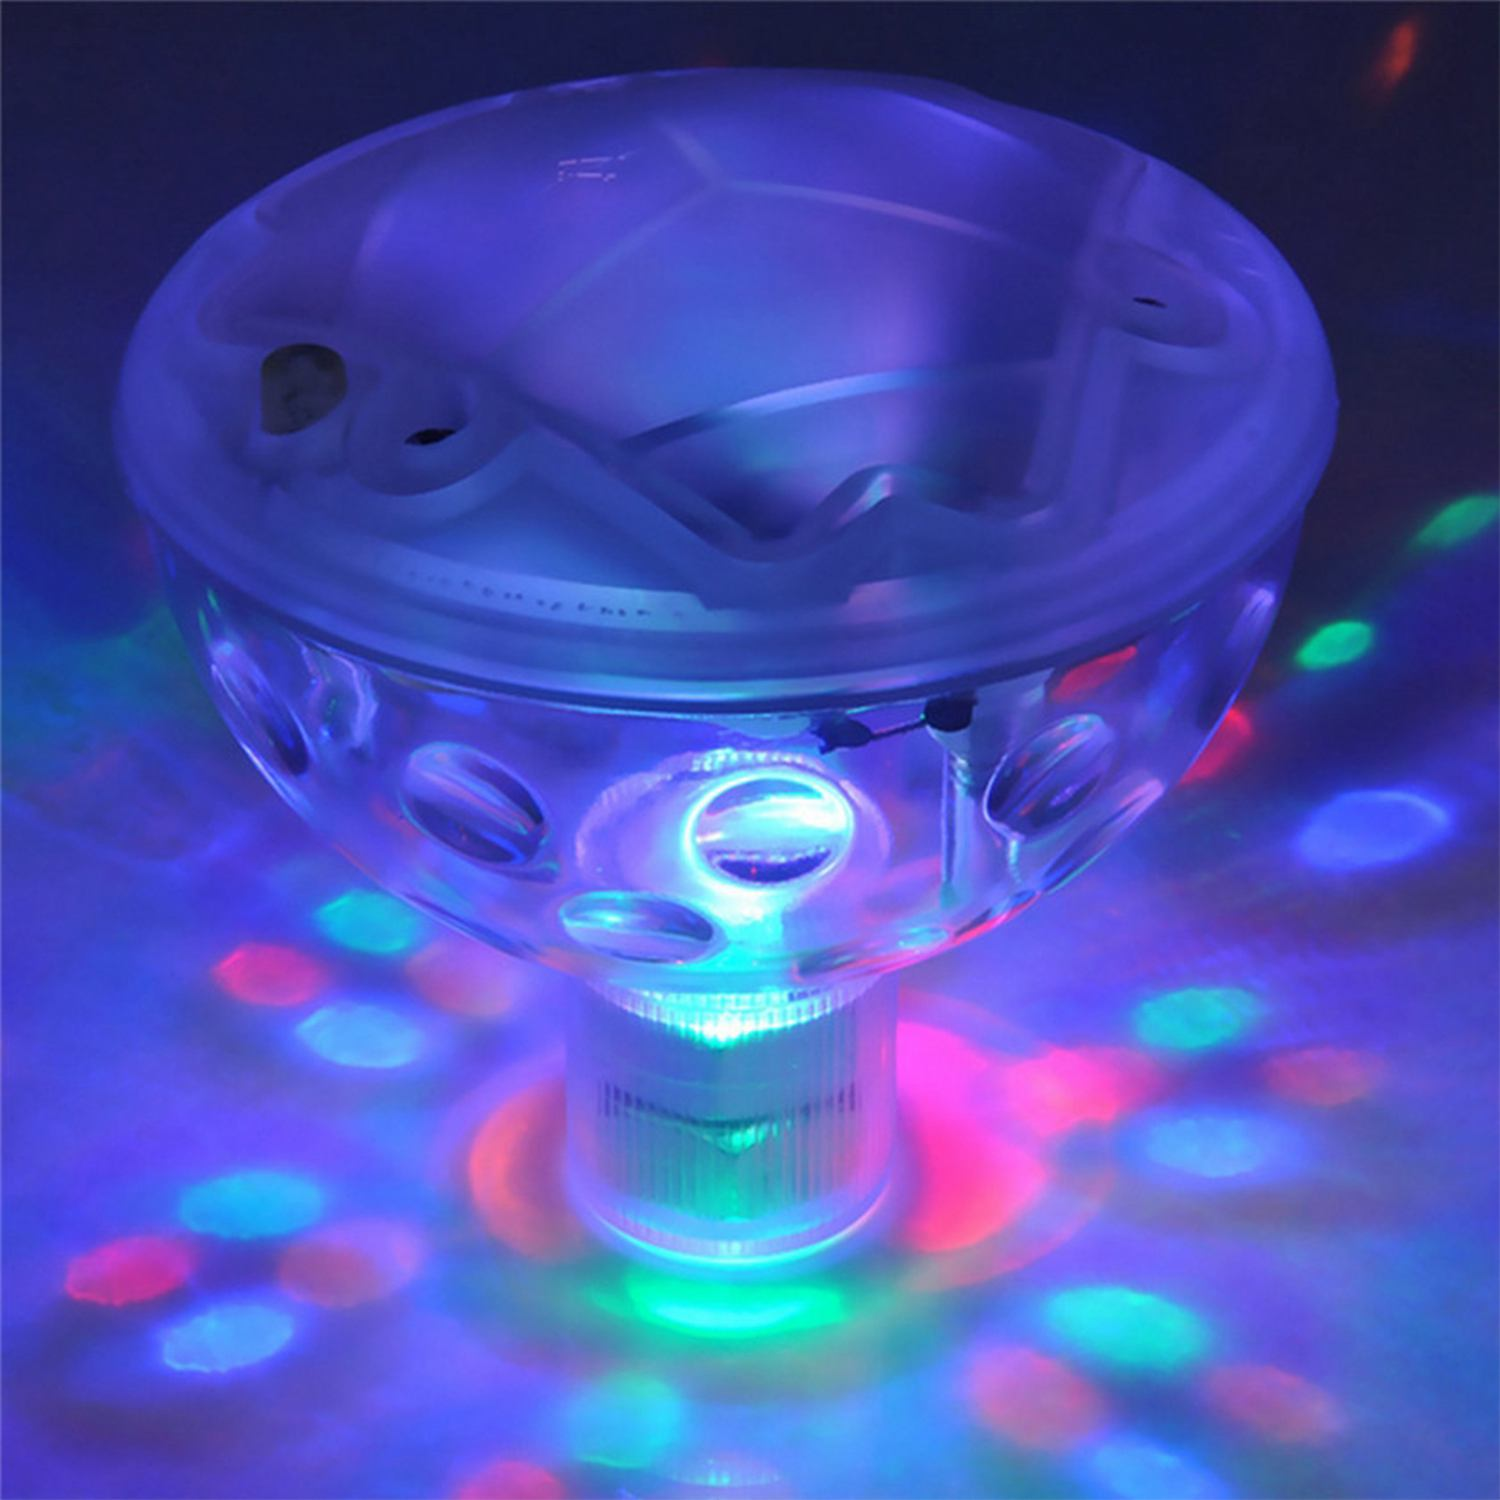 l*h*w Limpid In Sight Confident Creativity Stunning Pool Light Floating Underwater Led Disco Light Glow Show Swimming Pool Hot Tub Spa Lamp 8cm X8cm X8